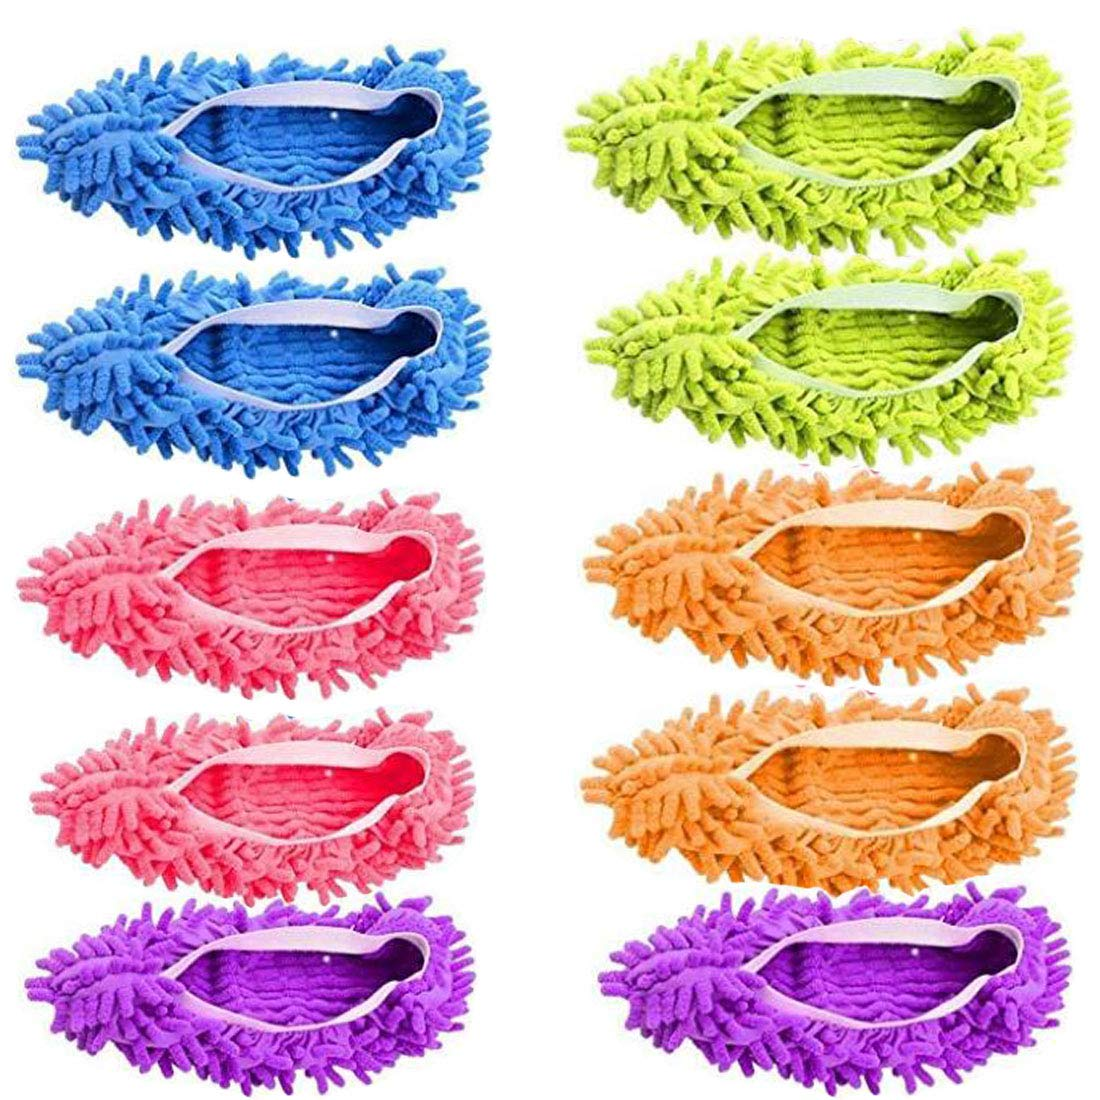 5 Pairs Washable Dust Mop Slippers Microfiber Cleaning Mop Slippers Shoes Dust Floor Cleaner Multi-Function Floor Cleaning Shoes Cover (Green,Blue,Orange,Purple)